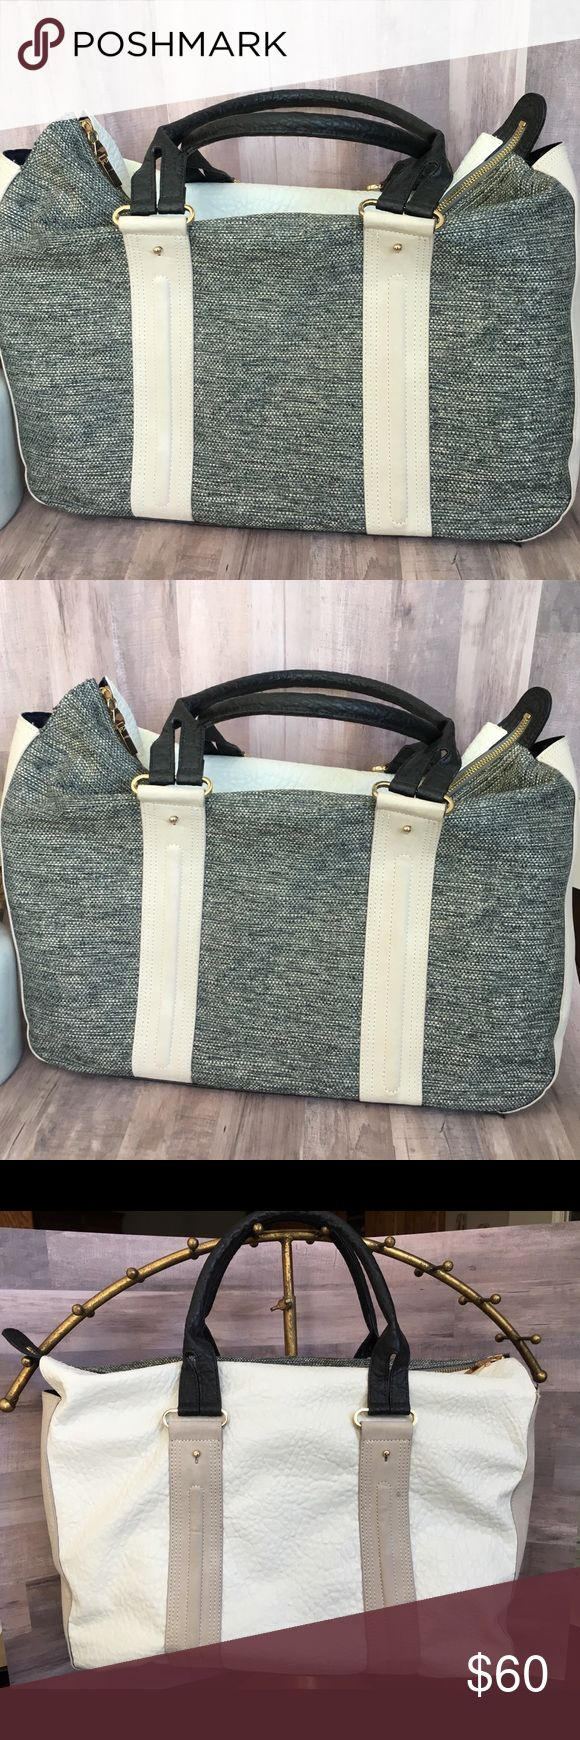 NWT French Connection Tote Bag Beautiful brand new French Connection tote bag with gold accents.  Heathers grey on one side, cream on the other.  Perfect for work/lap top, business. French Connection Bags Totes